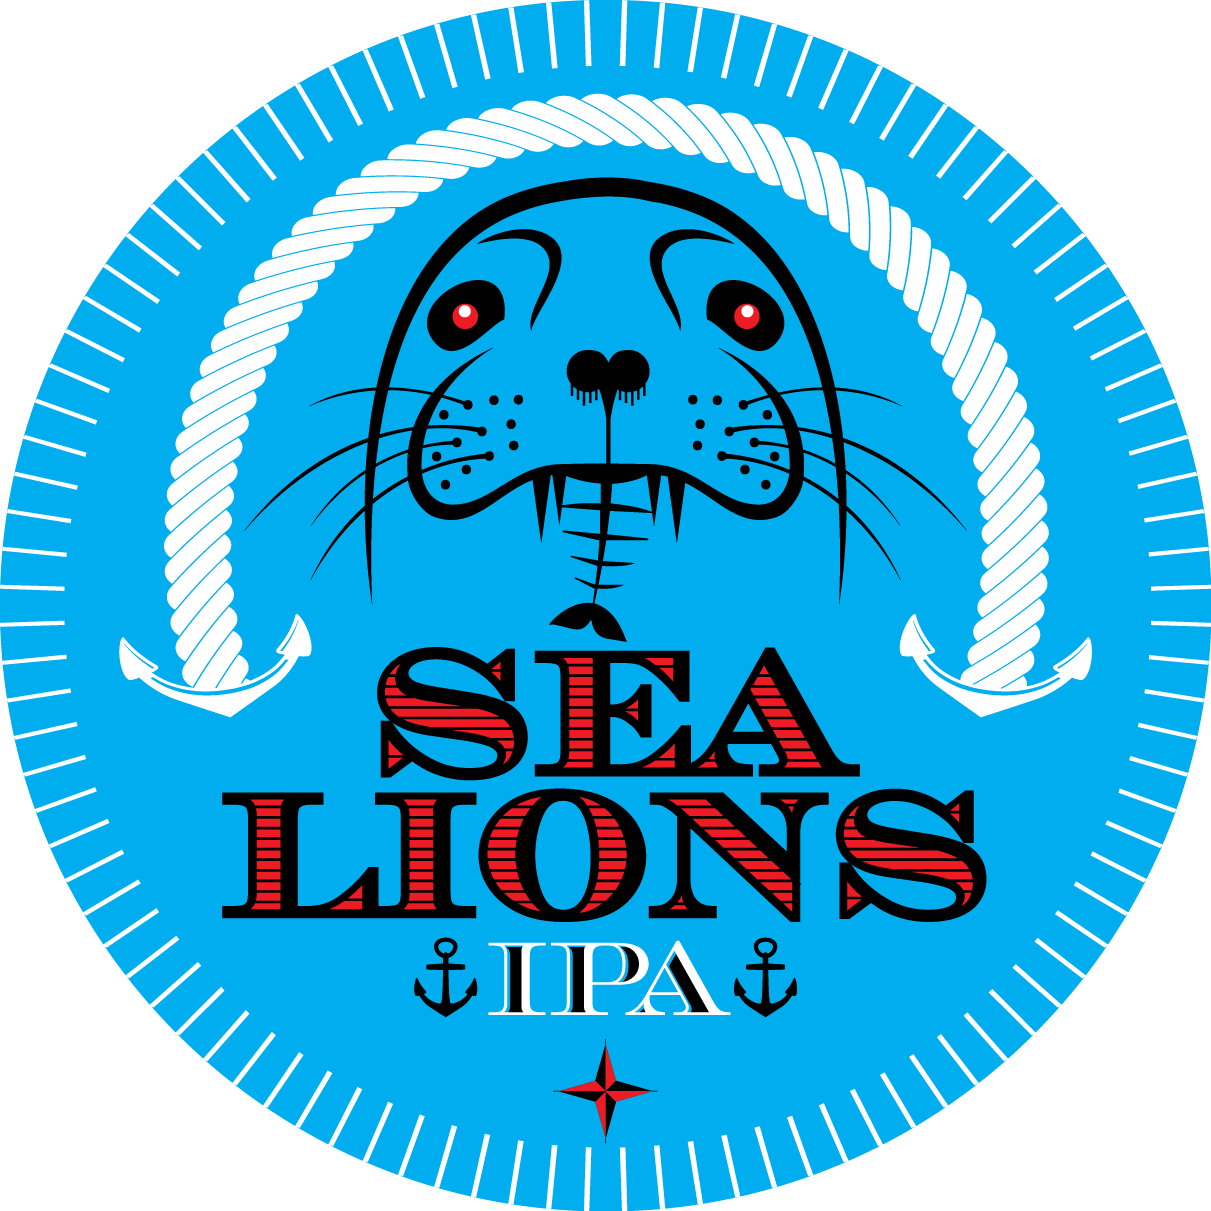 Animal army brewery sea lions ale logo